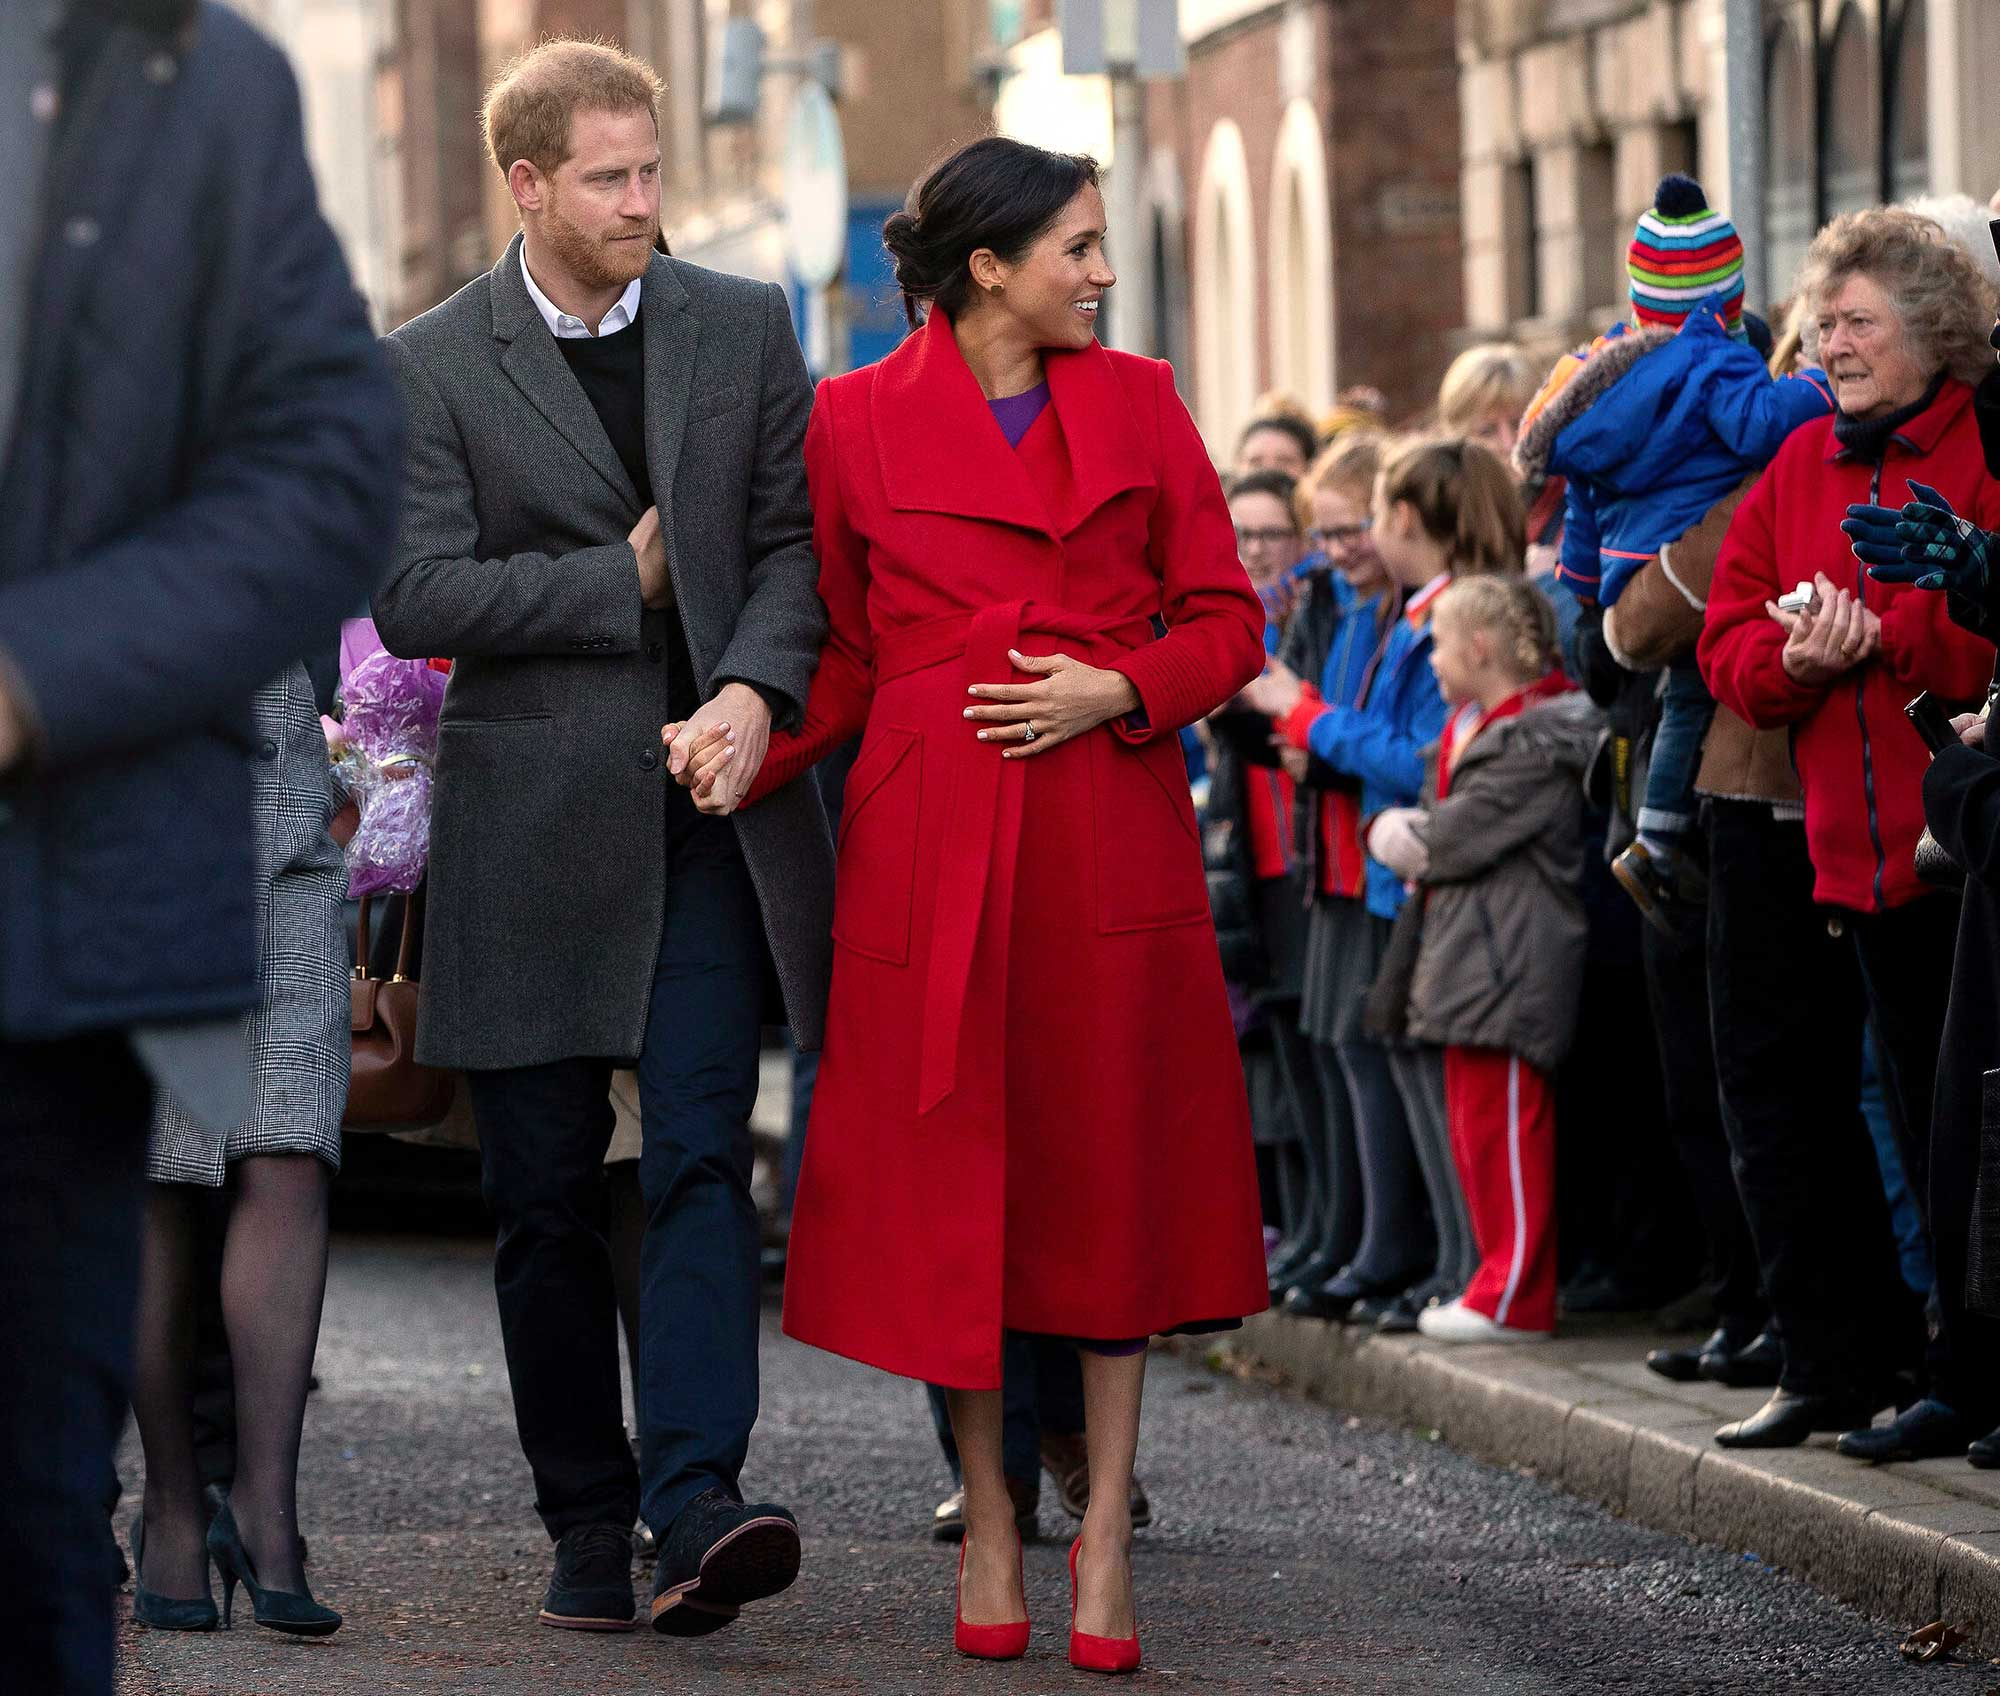 <div class='meta'><div class='origin-logo' data-origin='none'></div><span class='caption-text' data-credit='Charlotte Graham/Daily Telegraph/PA Wire via AP'>Harry and Meghan visit Hamilton Square in Birkenhead to see a new sculpture marking the 100th anniversary of war poet Wilfred Owen's death on Jan. 14, 2019.</span></div>